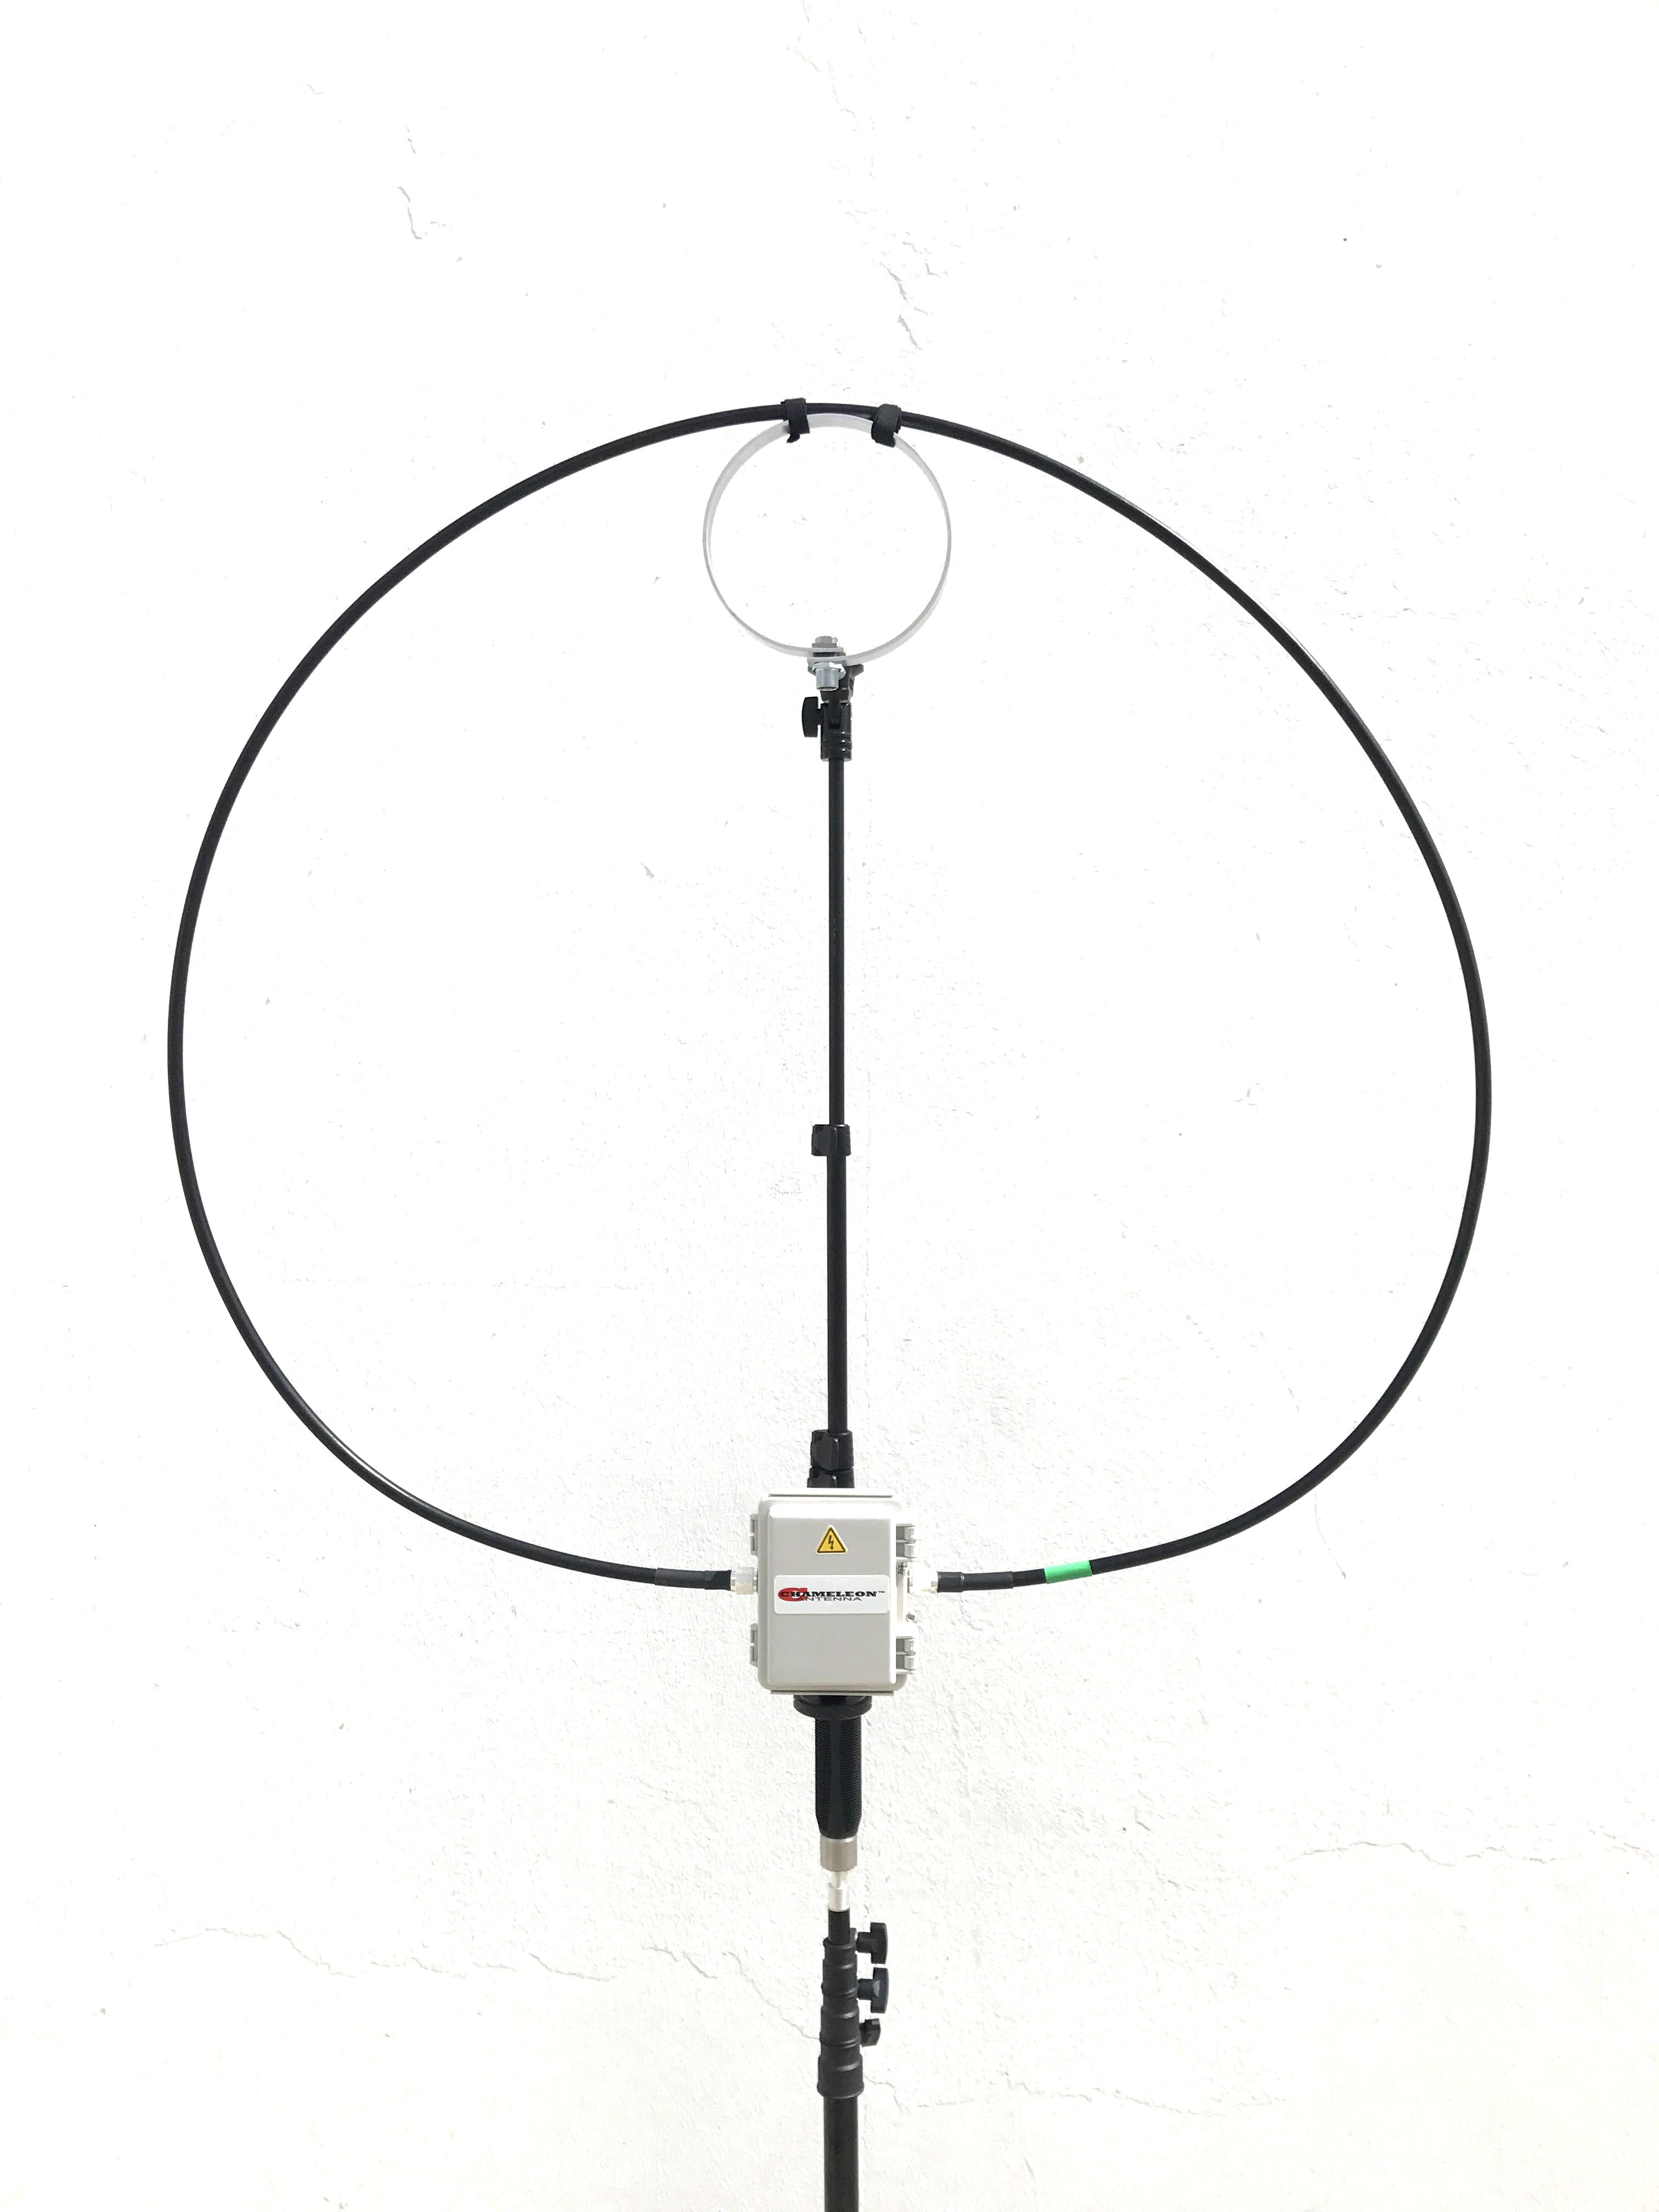 CHAMELEON ANTENNA - Portable Antenna, Loop Antenna, Ham Radio on antenna operation, antenna transformer, antenna types, antenna lightning arrestor, antenna wire, antenna accessories, antenna cable, antenna radio, tv antenna diagram, antenna parts, antenna installation, wifi antenna diagram, antenna block diagram, wire harness diagram, reception diagram, antenna circuit diagram, antenna connector, antenna grounding diagram, antenna coil diagram,